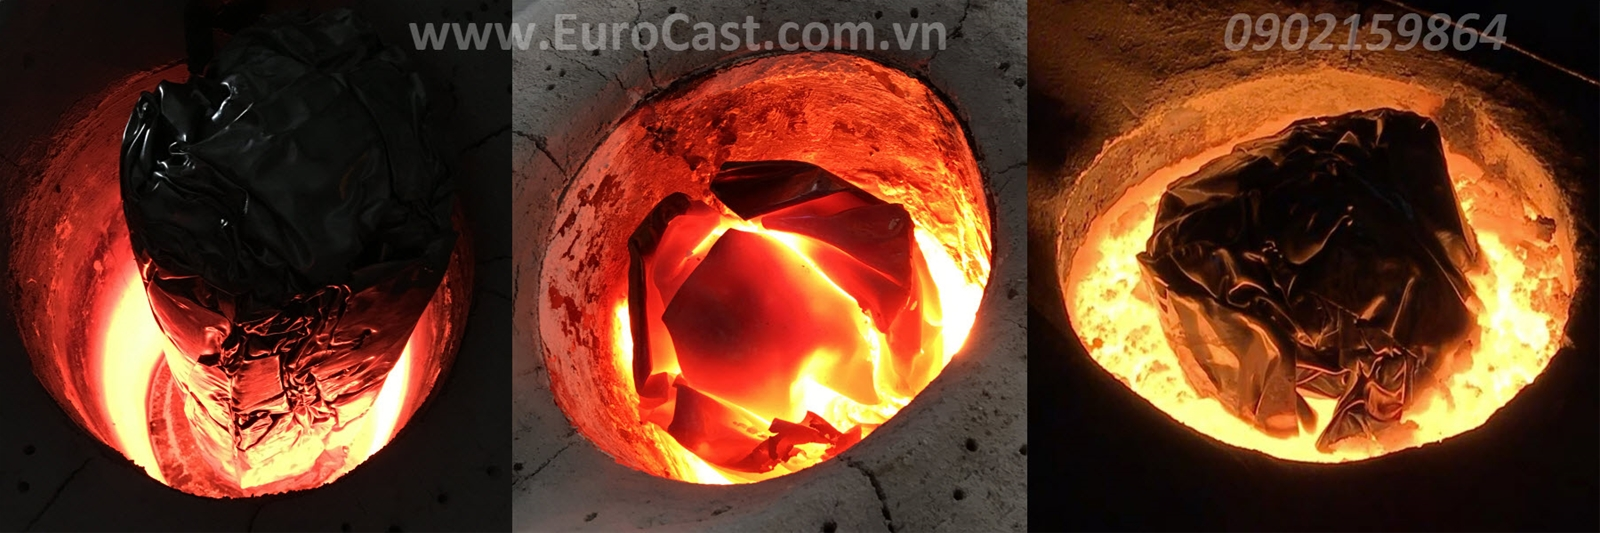 Leading investment Casting Company in Vietnam